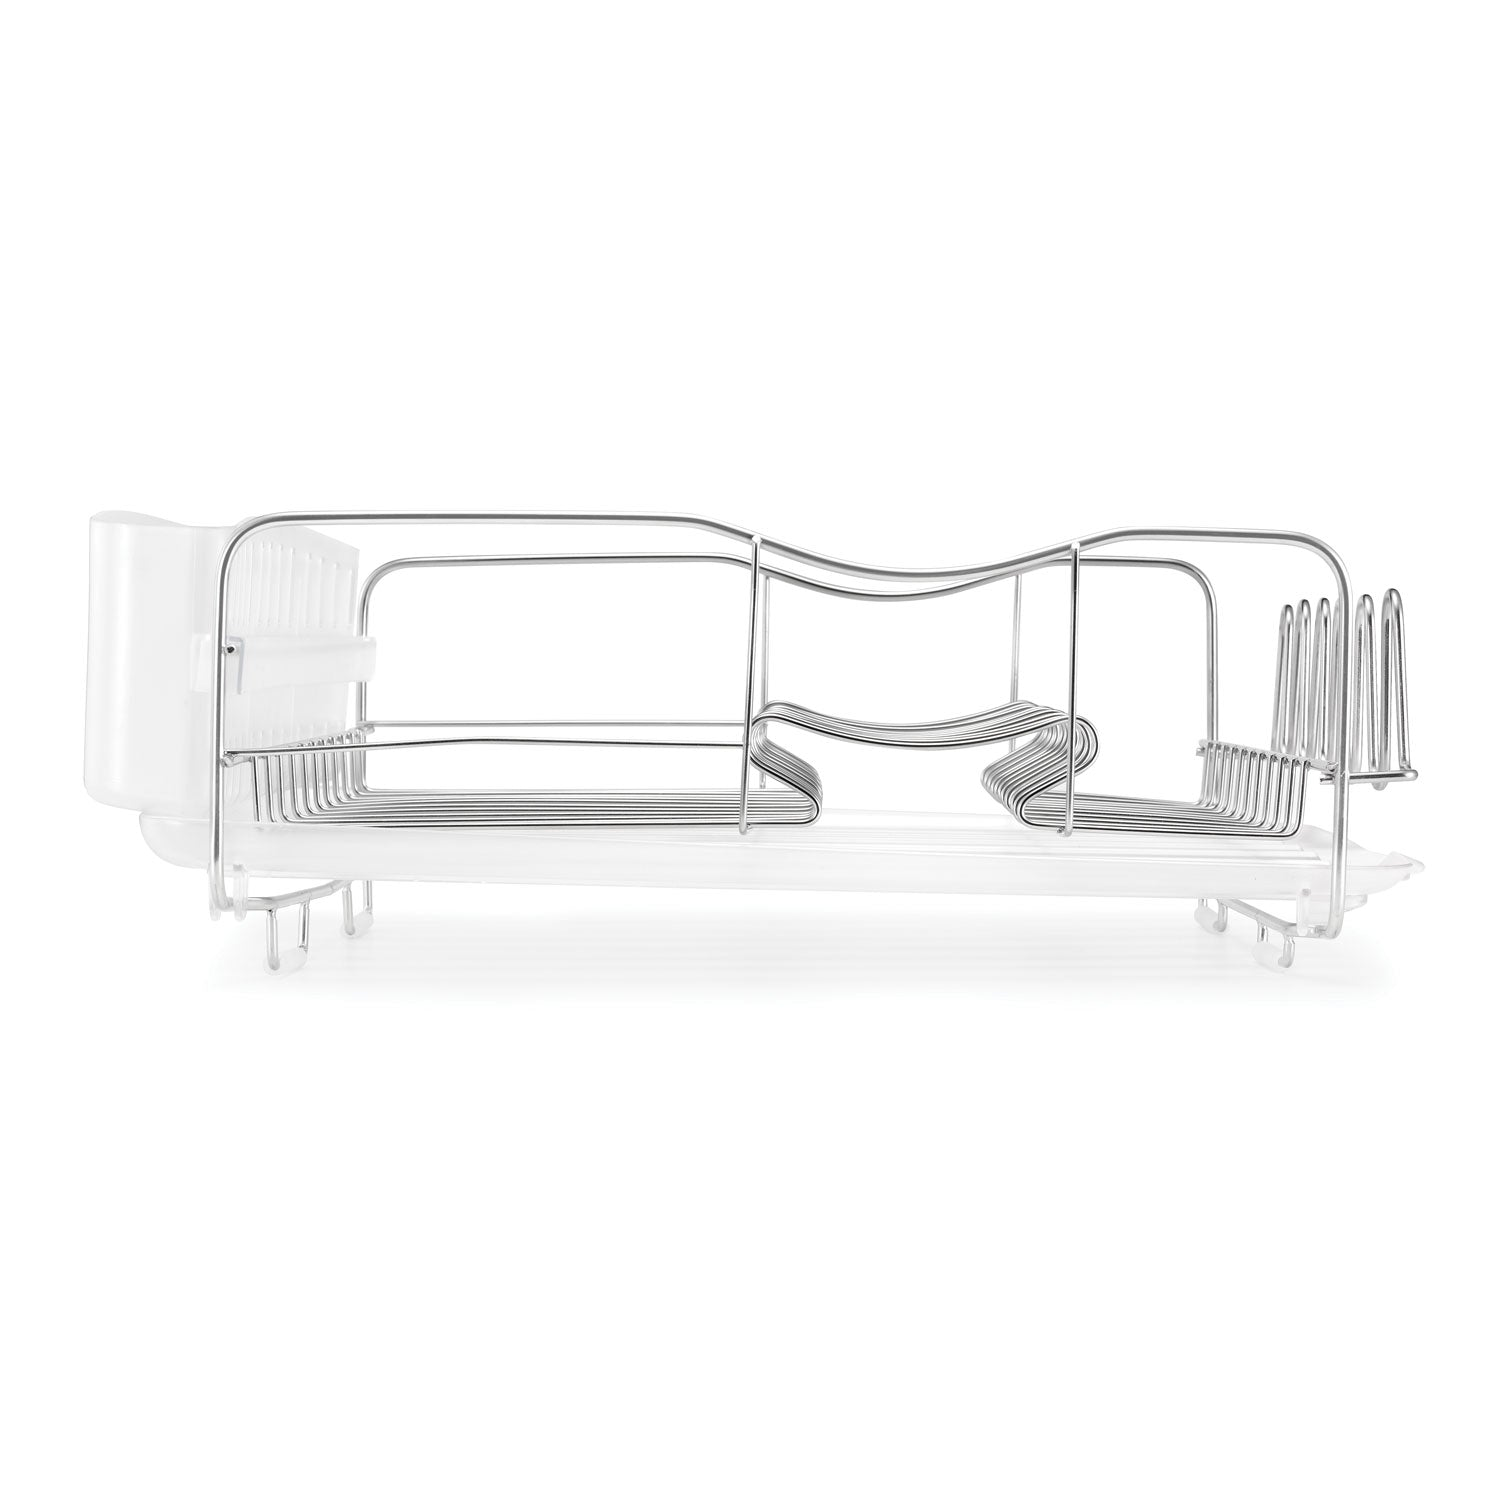 3-Piece Advantage Dish Rack